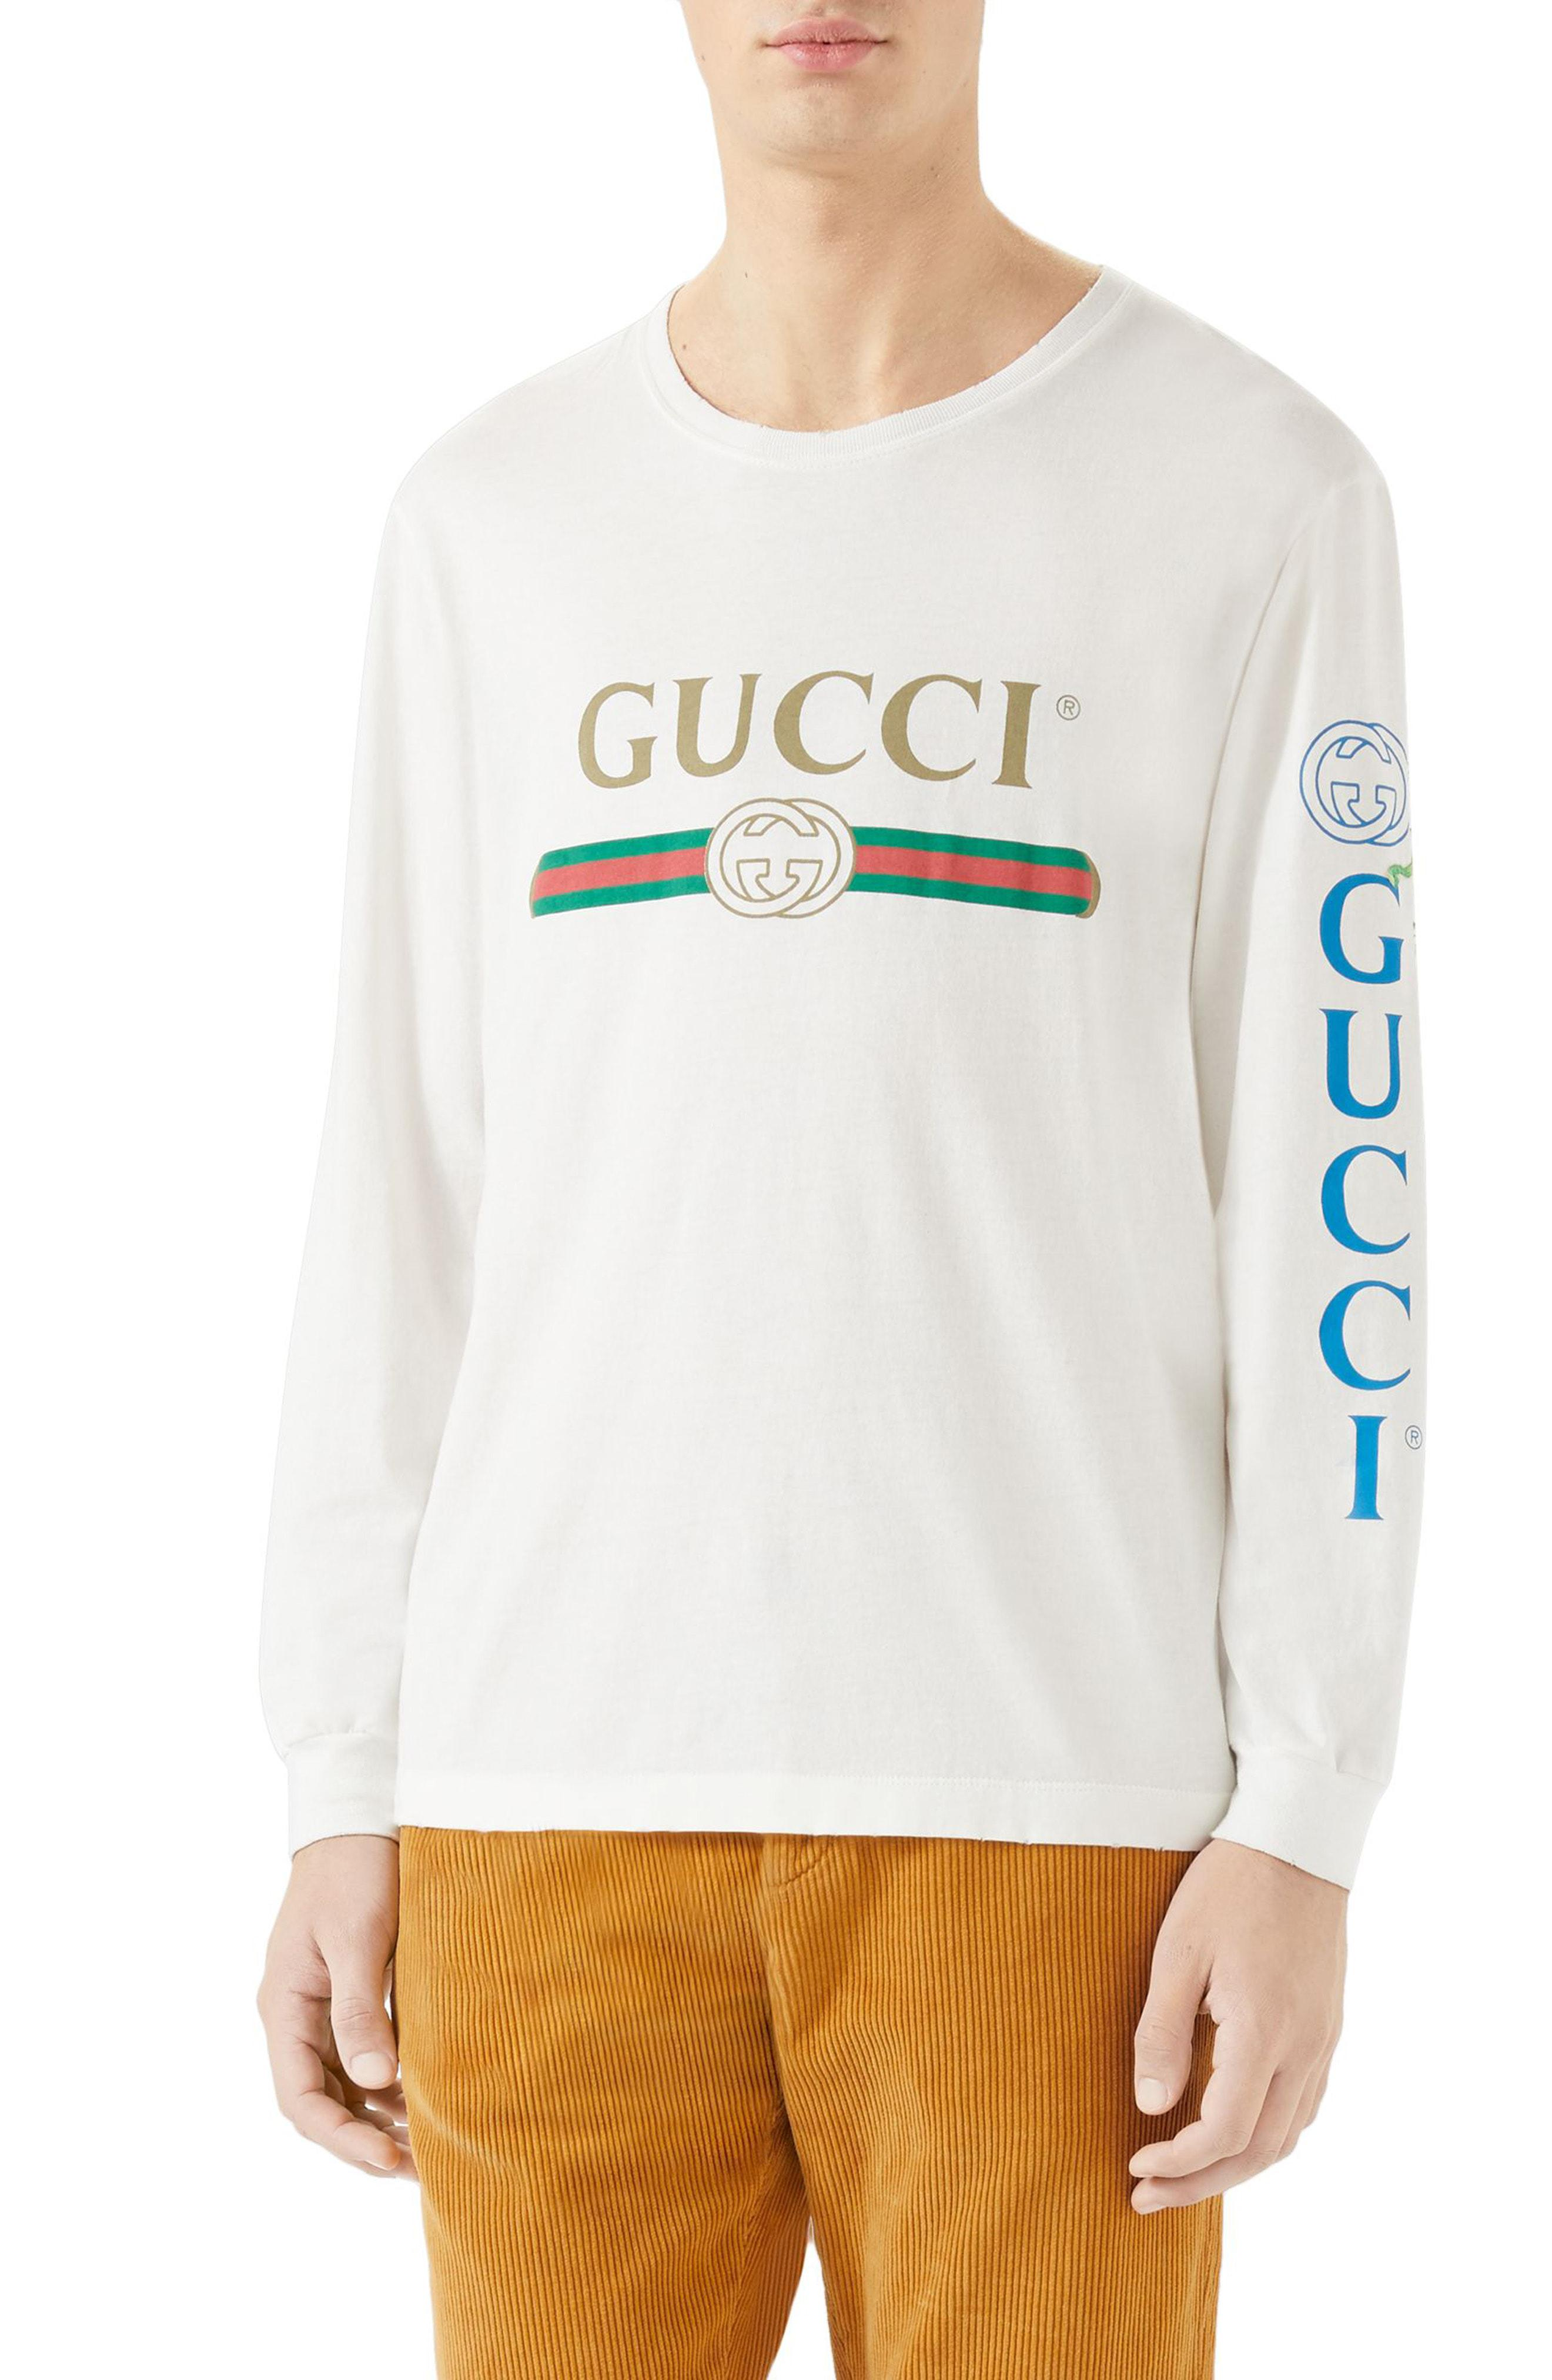 1b6afe25d Lyst - Gucci Dragon Applique Long-sleeve T-shirt in White for Men